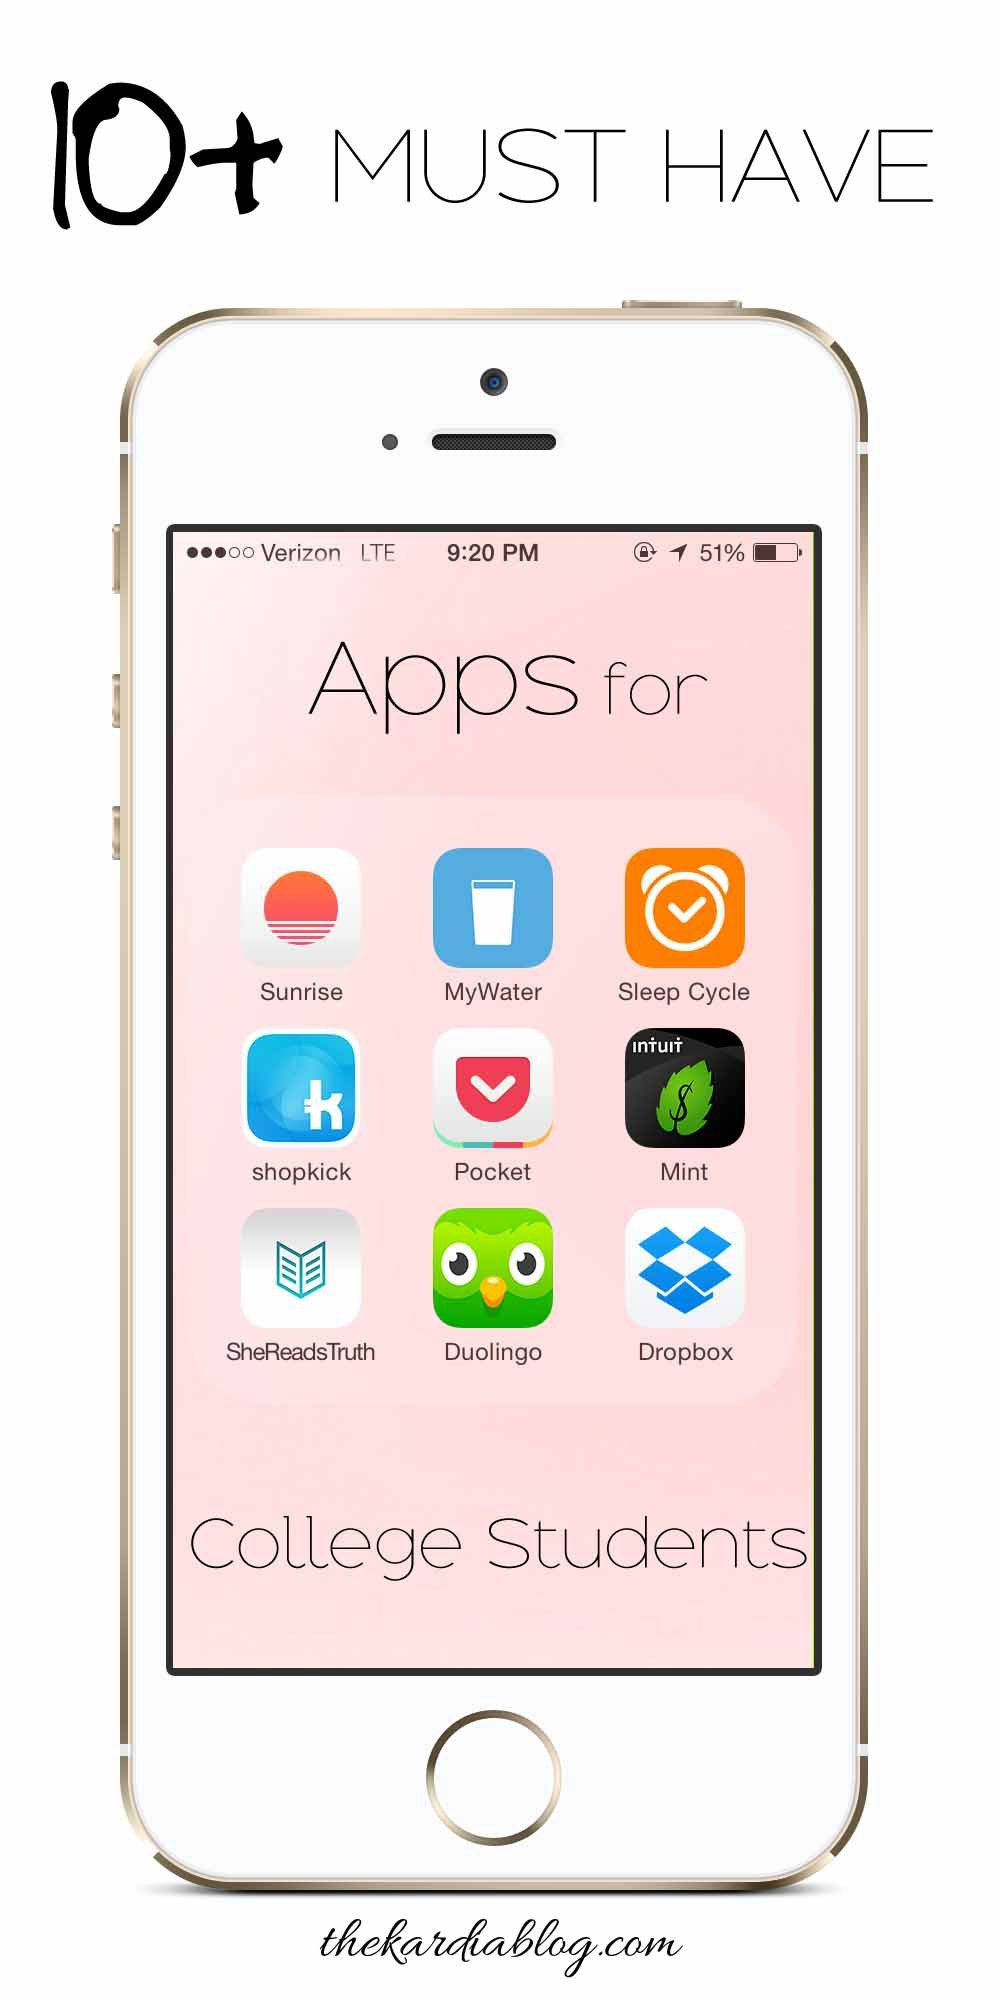 10 Must Have Apps for College Students! Save time by being